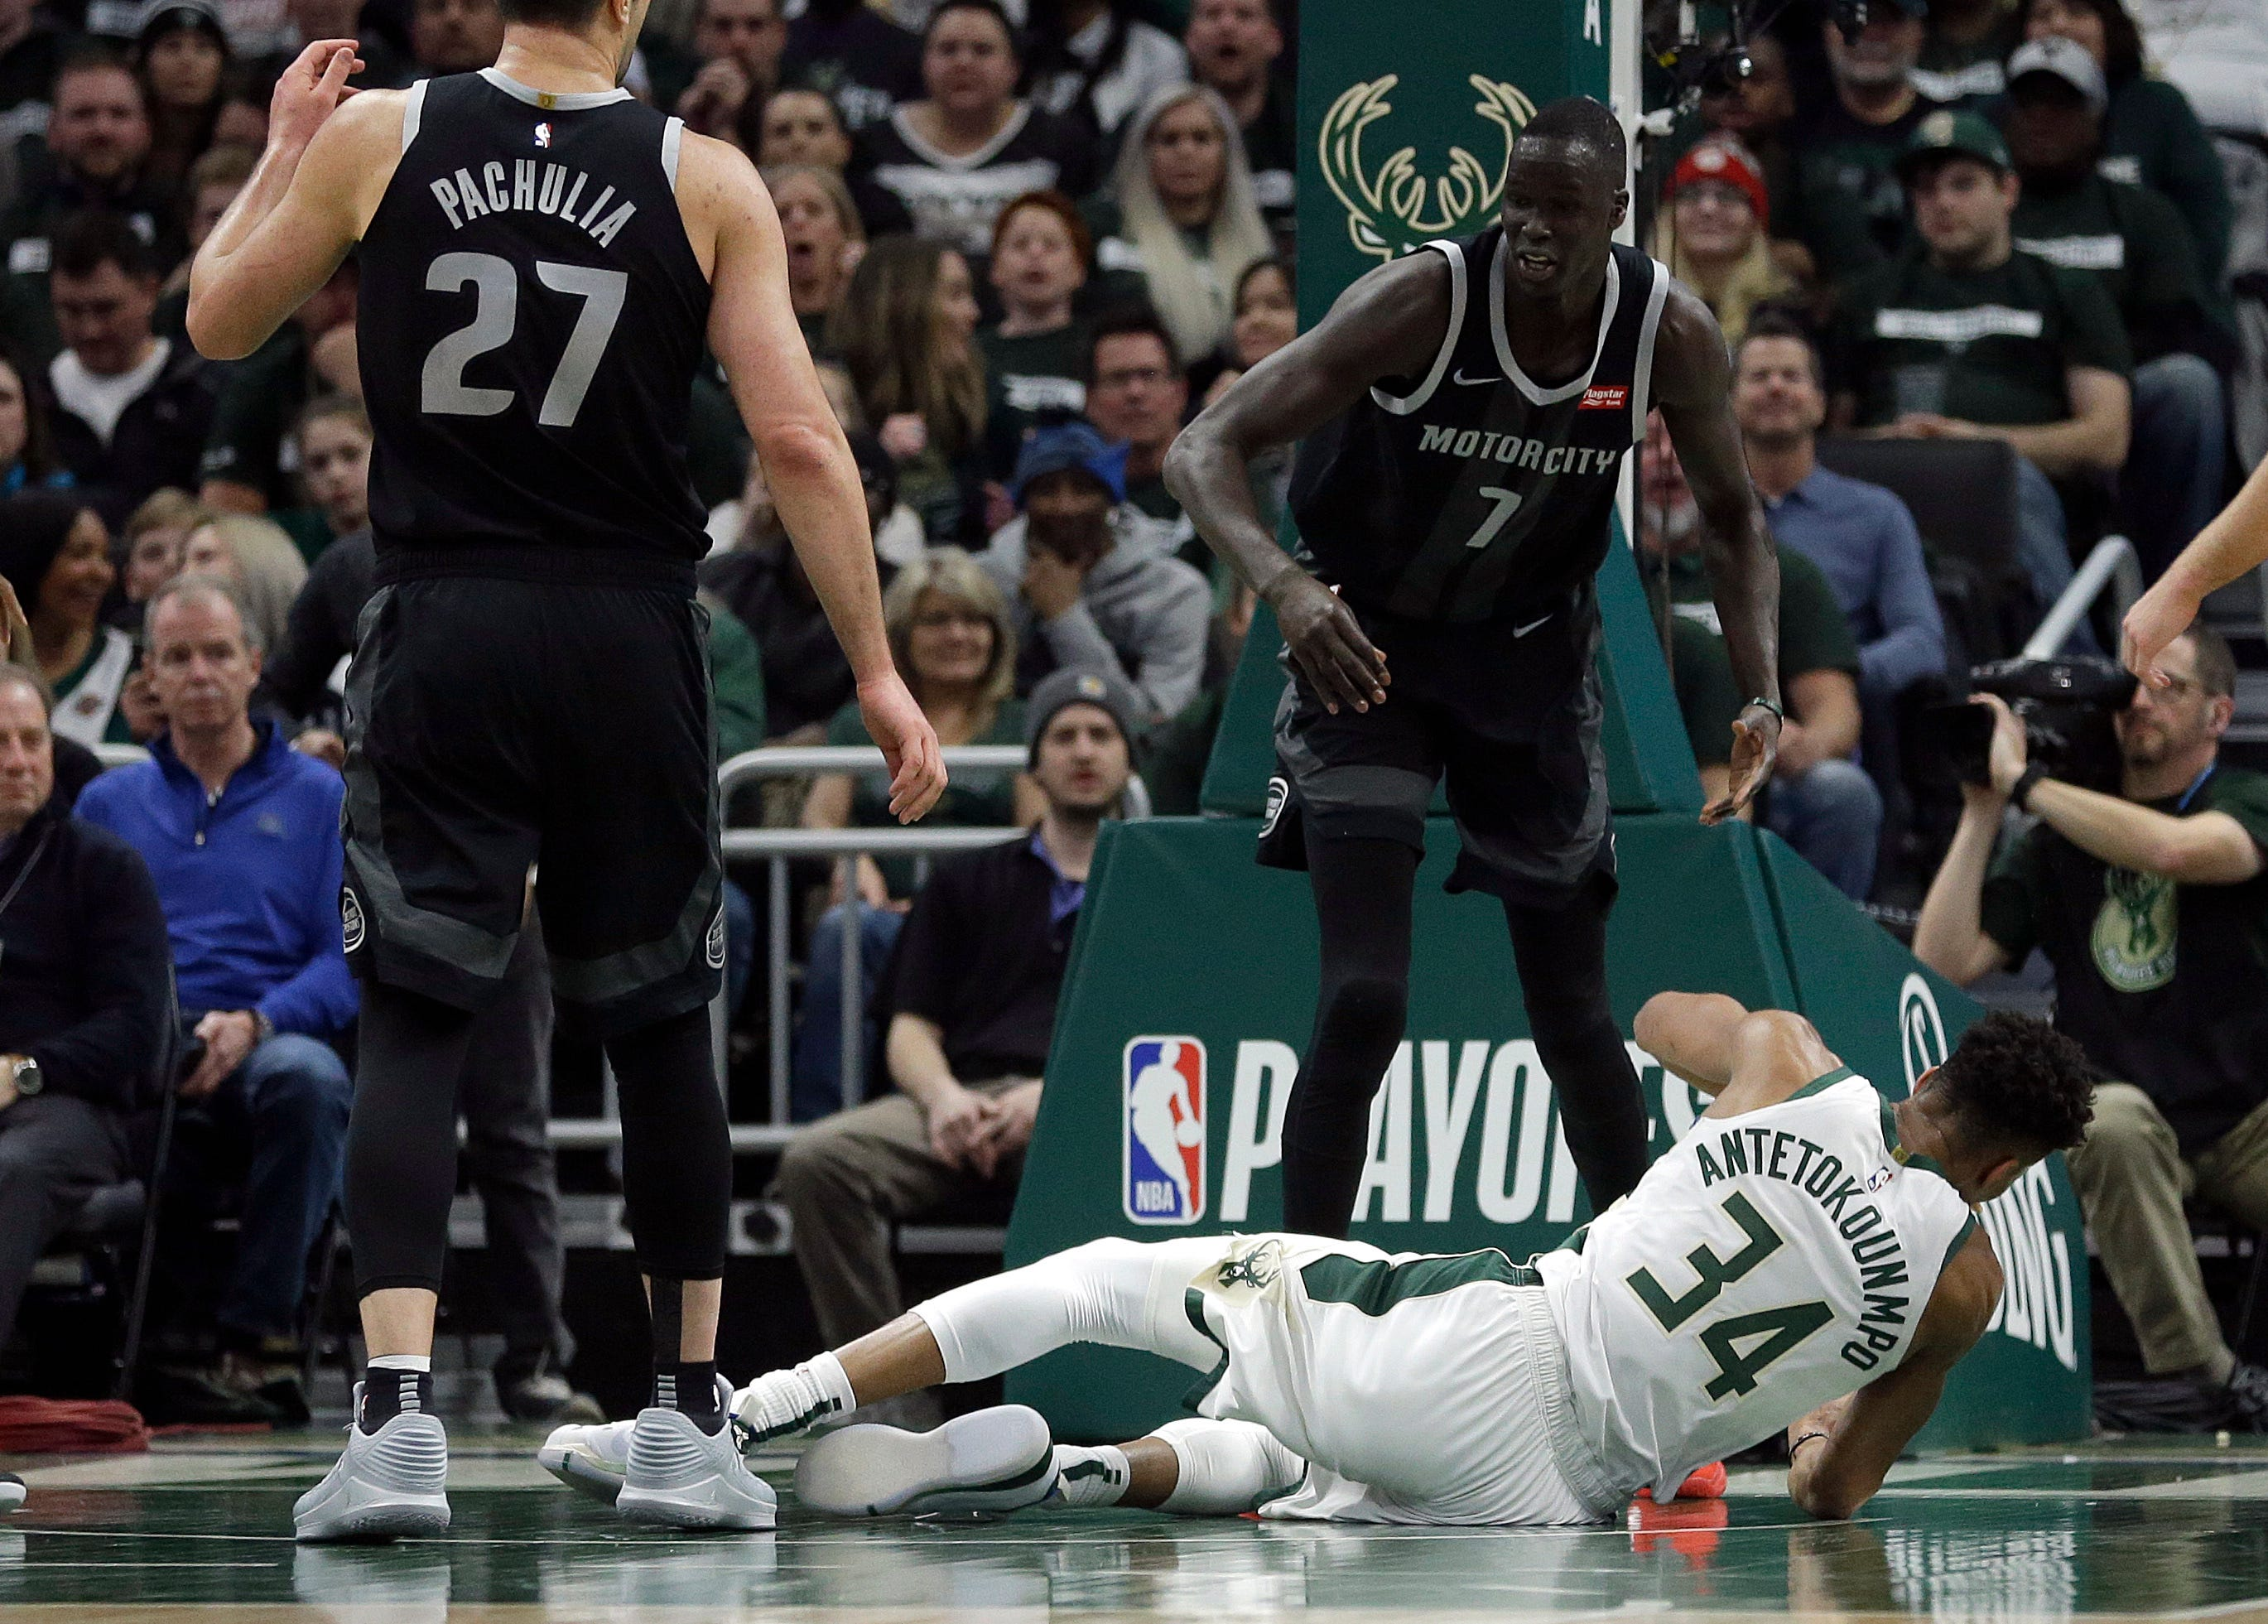 Pistons' Maker rattled by Game 1 play and Bucks fans' reception